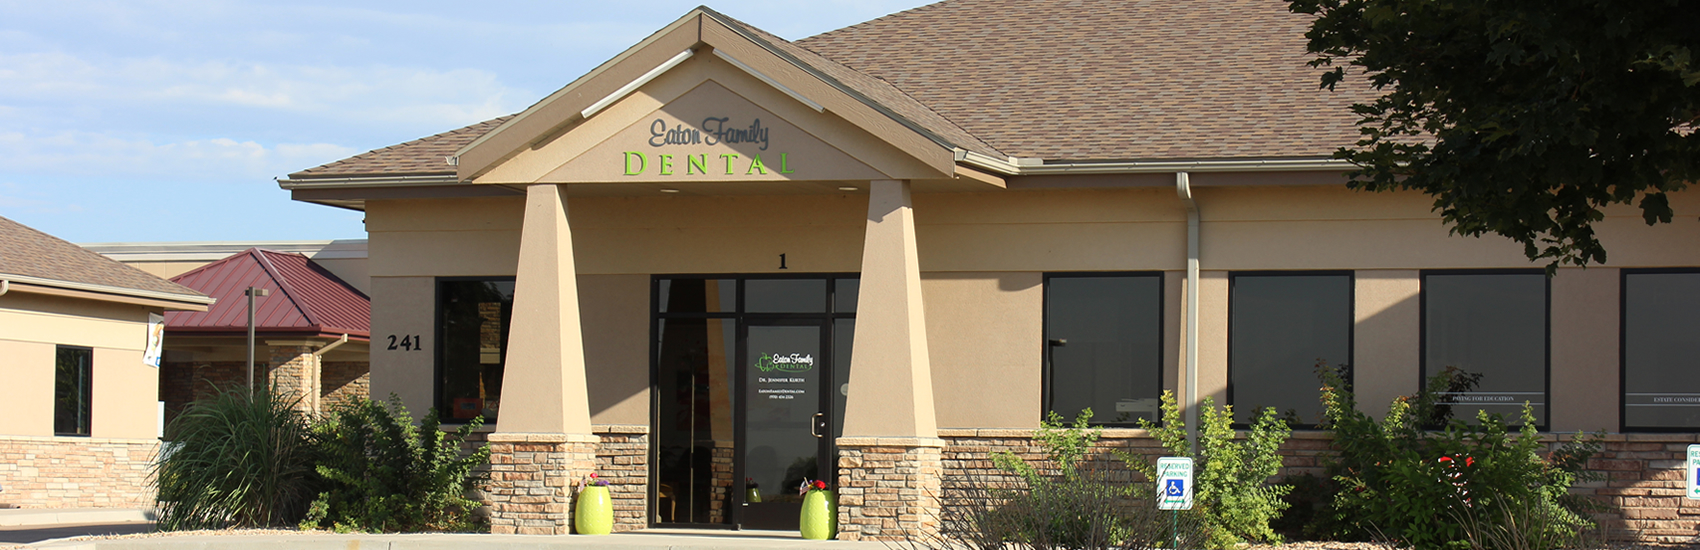 Eaton Family Dental Office Building